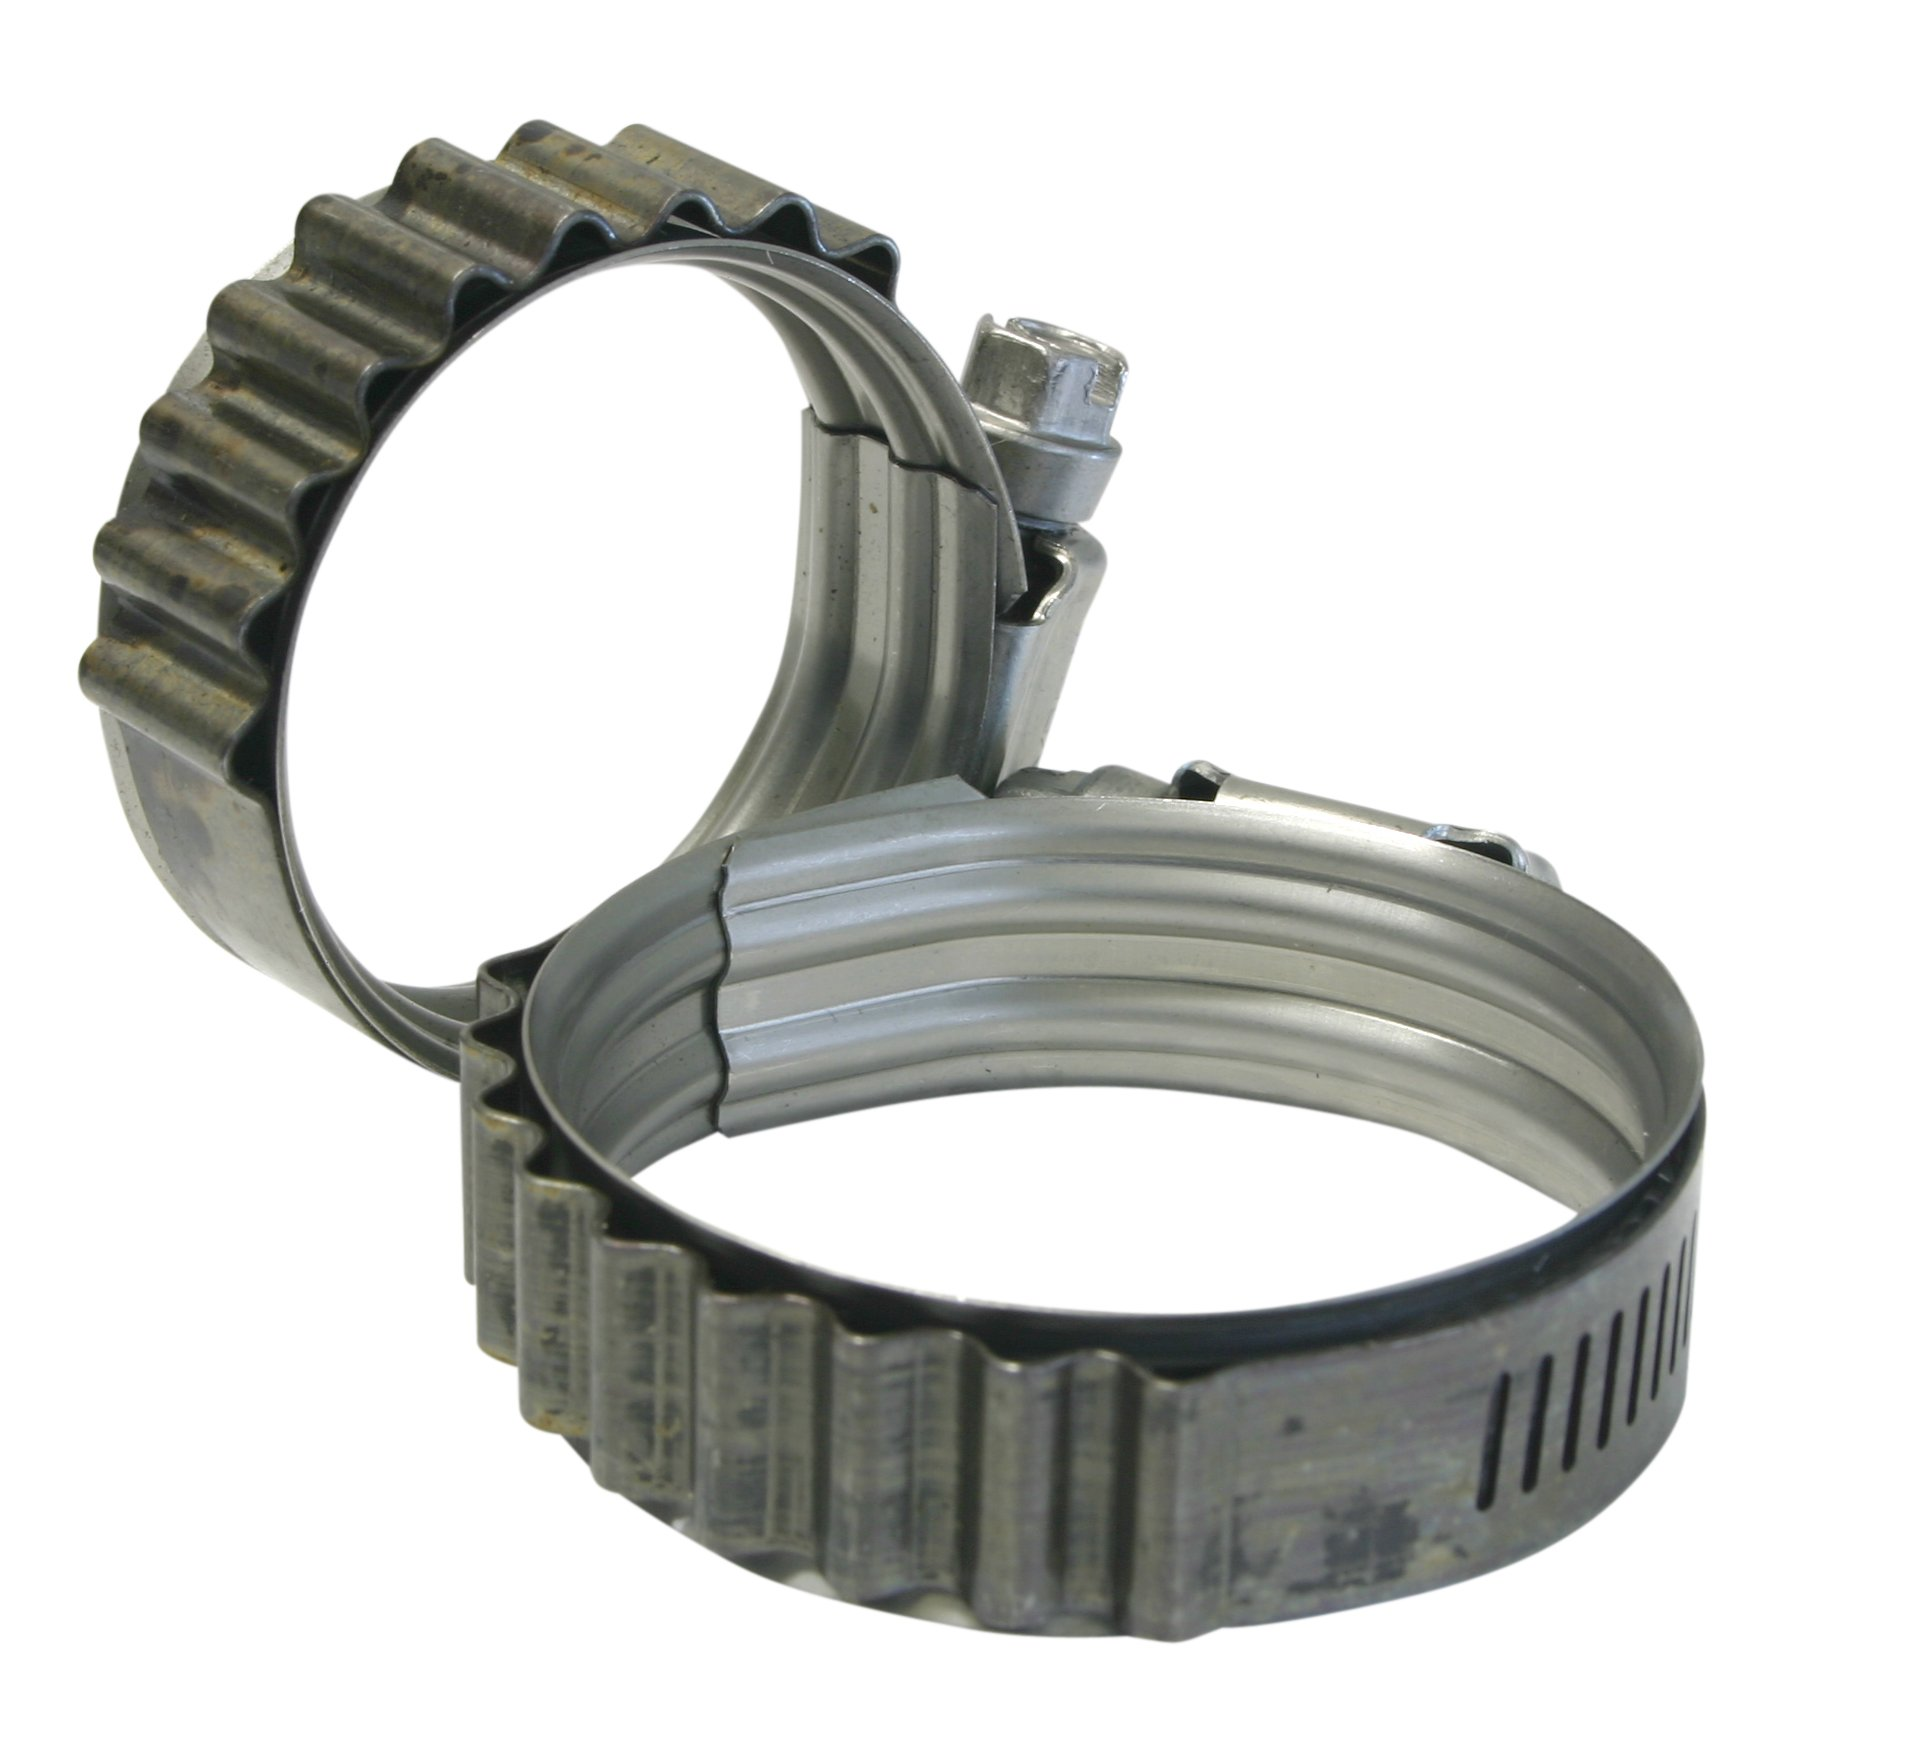 Turbosmart TS-HCT-M100 Stainless Steel Turbo Seal Tension Clamps 3.500 - 4.375''